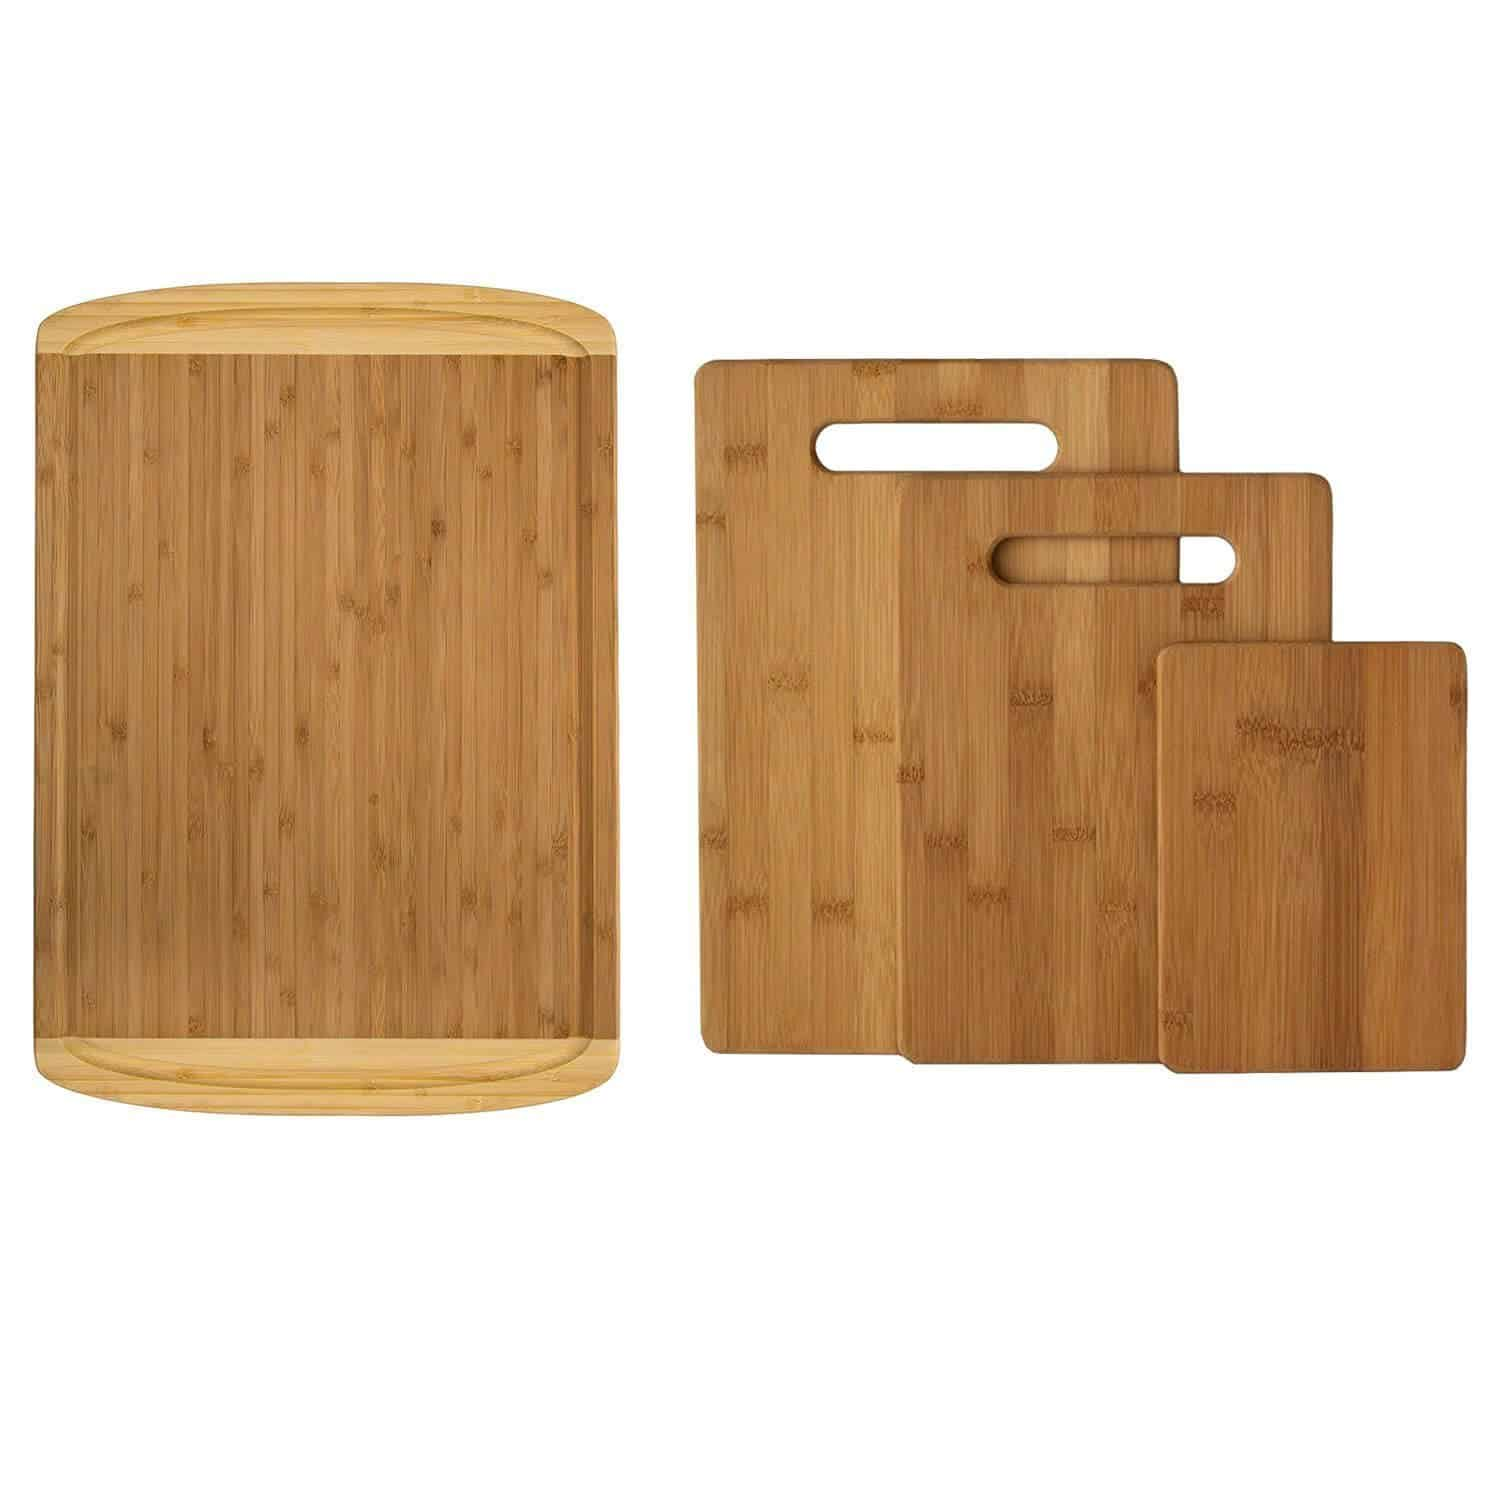 4 bamboo cutting boards, each different sizes